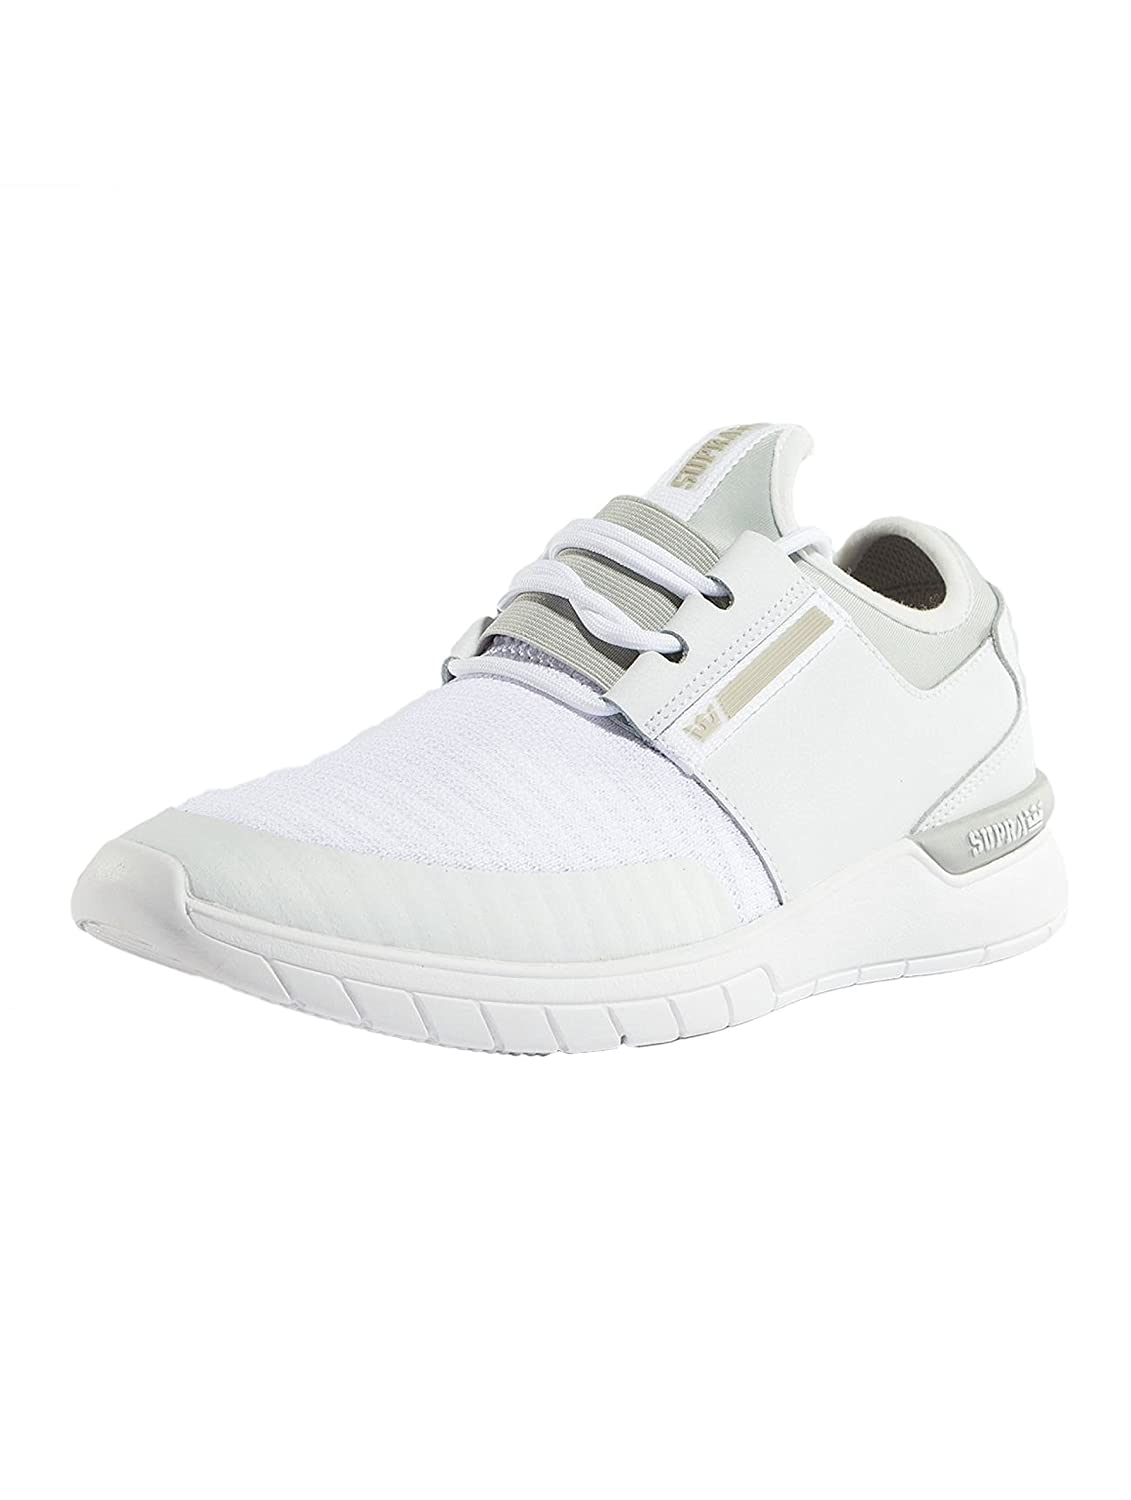 Supra Flow Run Skate Shoe B074KL3HWG 10 M US|White/Lt Grey-white